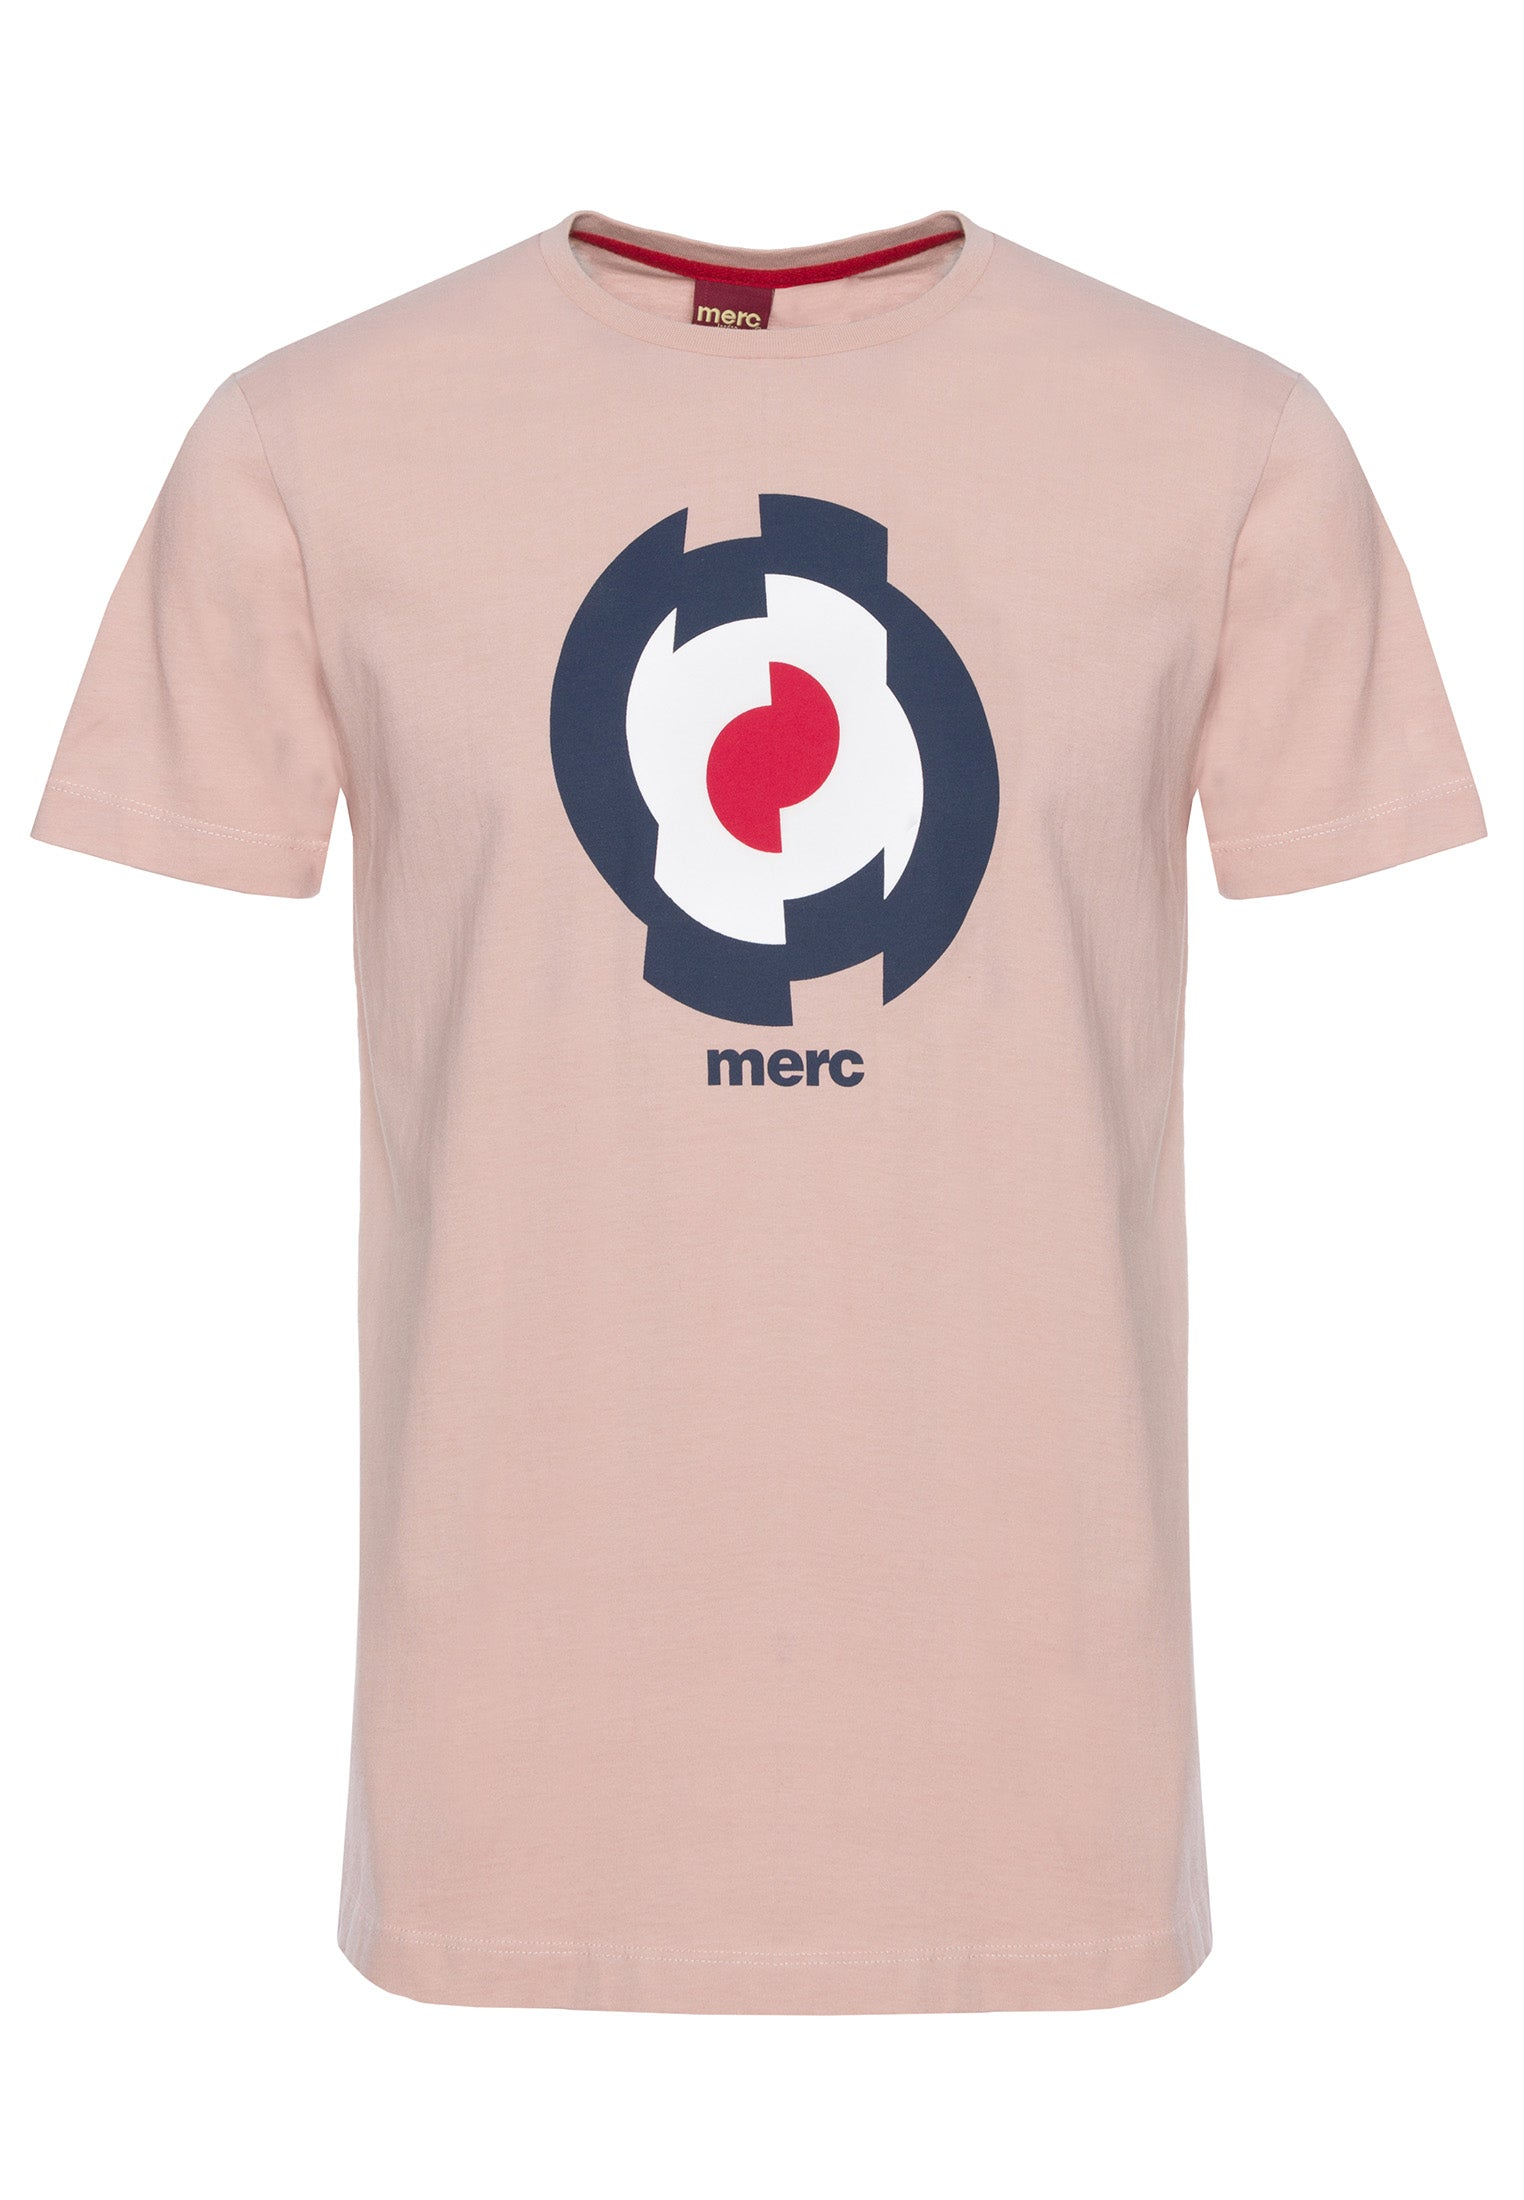 Gunson Mod Target Print T-Shirt - Merc London